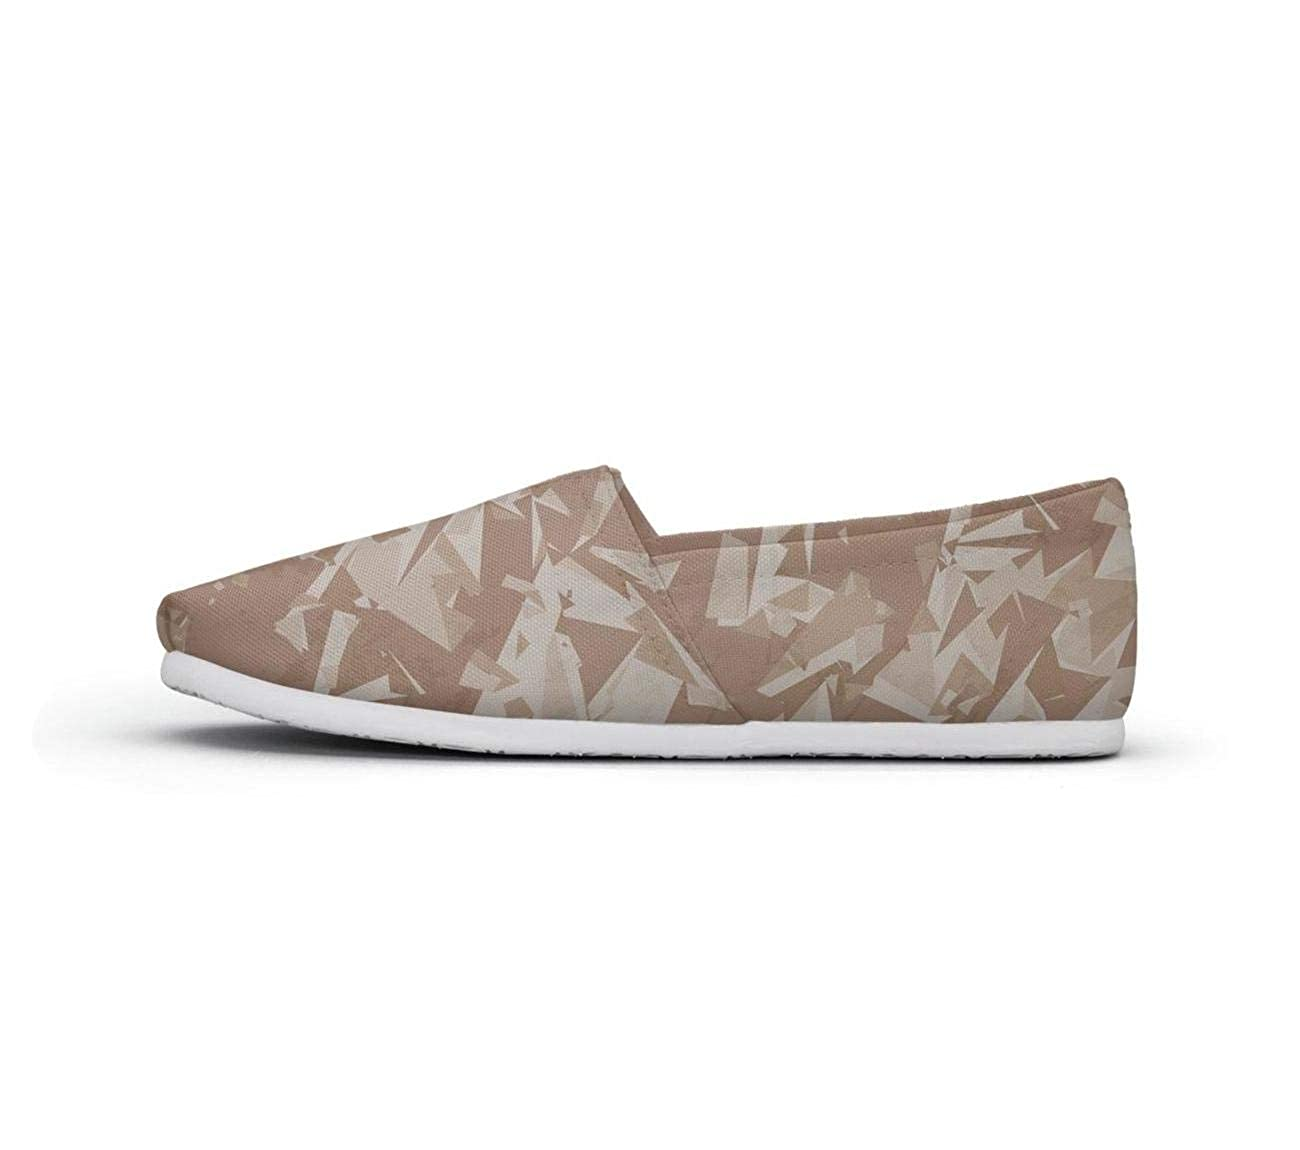 Black air force hex camo Womens Loafer Shoes for womens Fashion Highly Breathable